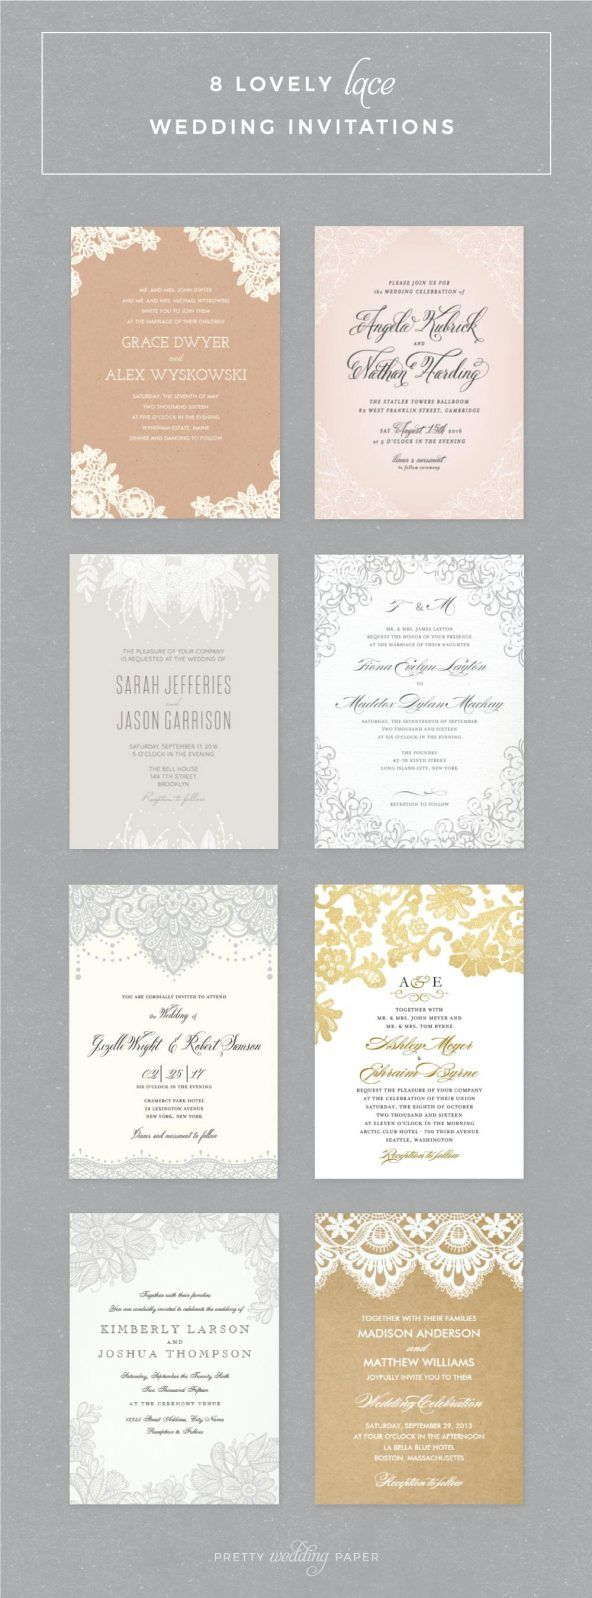 4044 best romantic wedding invitation wording images on pinterest lace wedding invitations 8 lovely invites including vintage lace rustic lace and floral filmwisefo